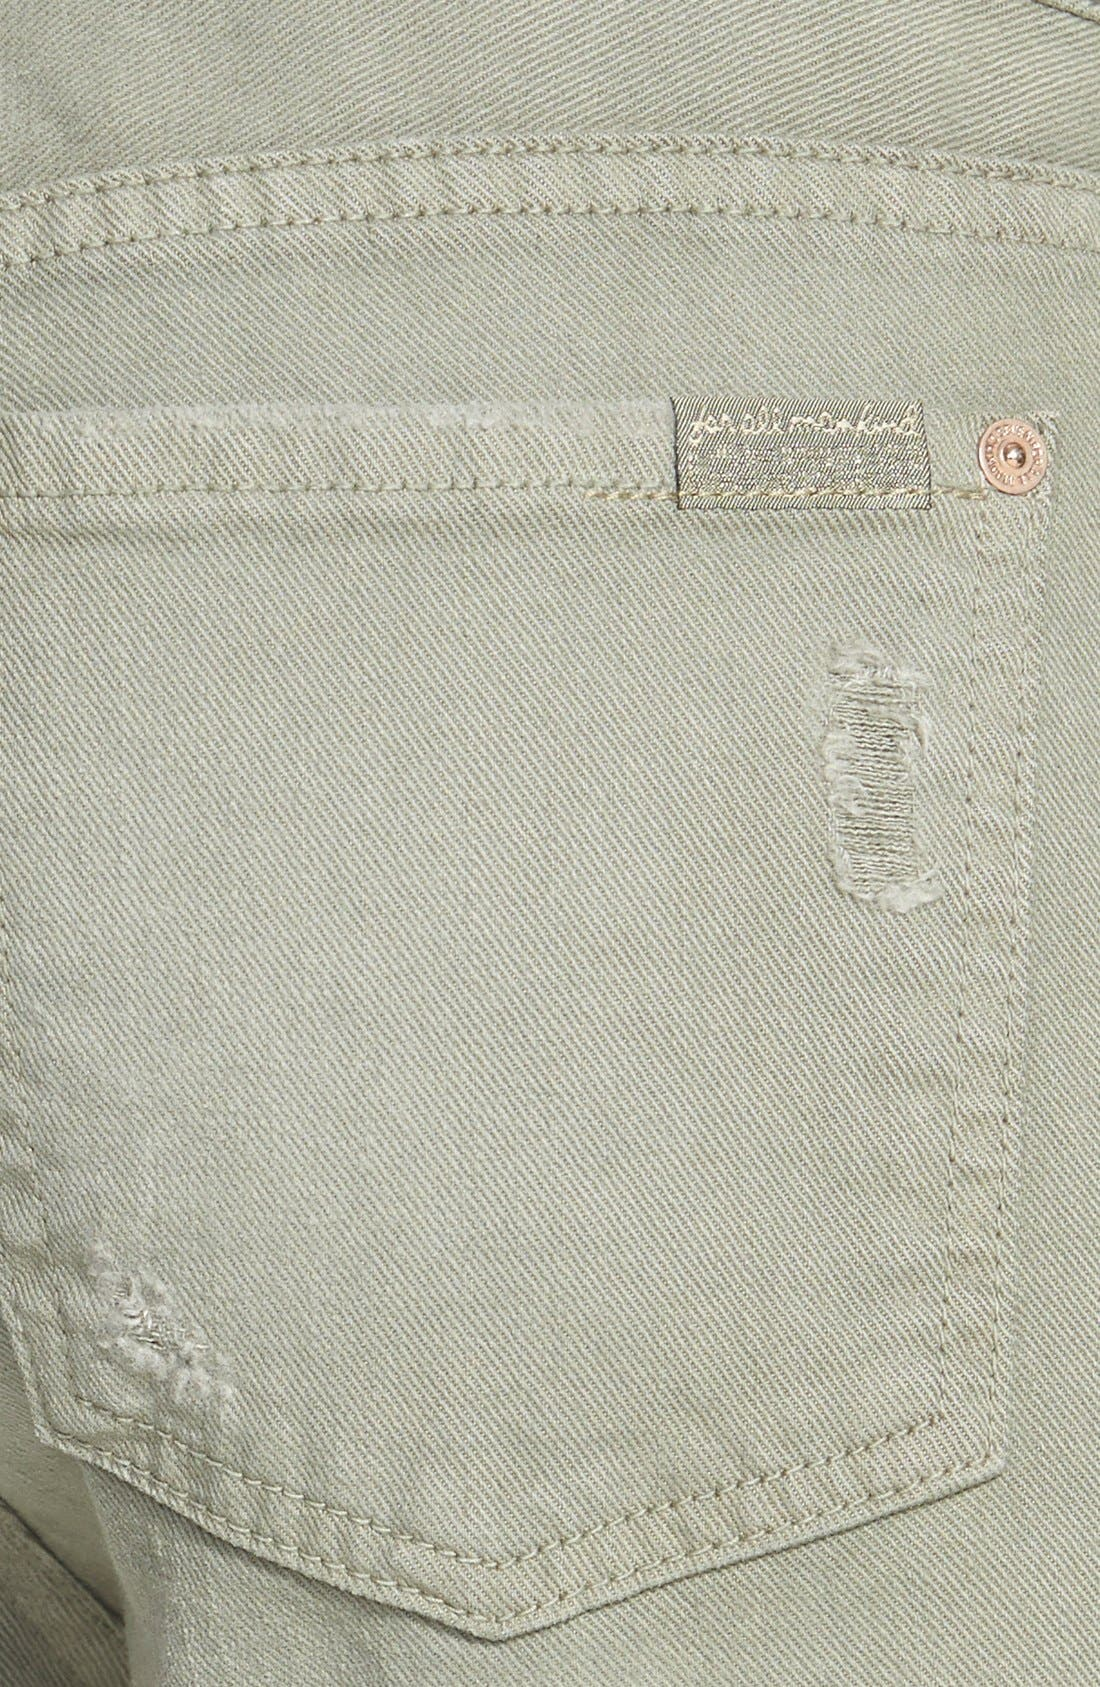 Alternate Image 3  - 7 For All Mankind® Relaxed Skinny Jeans (Fatigue)